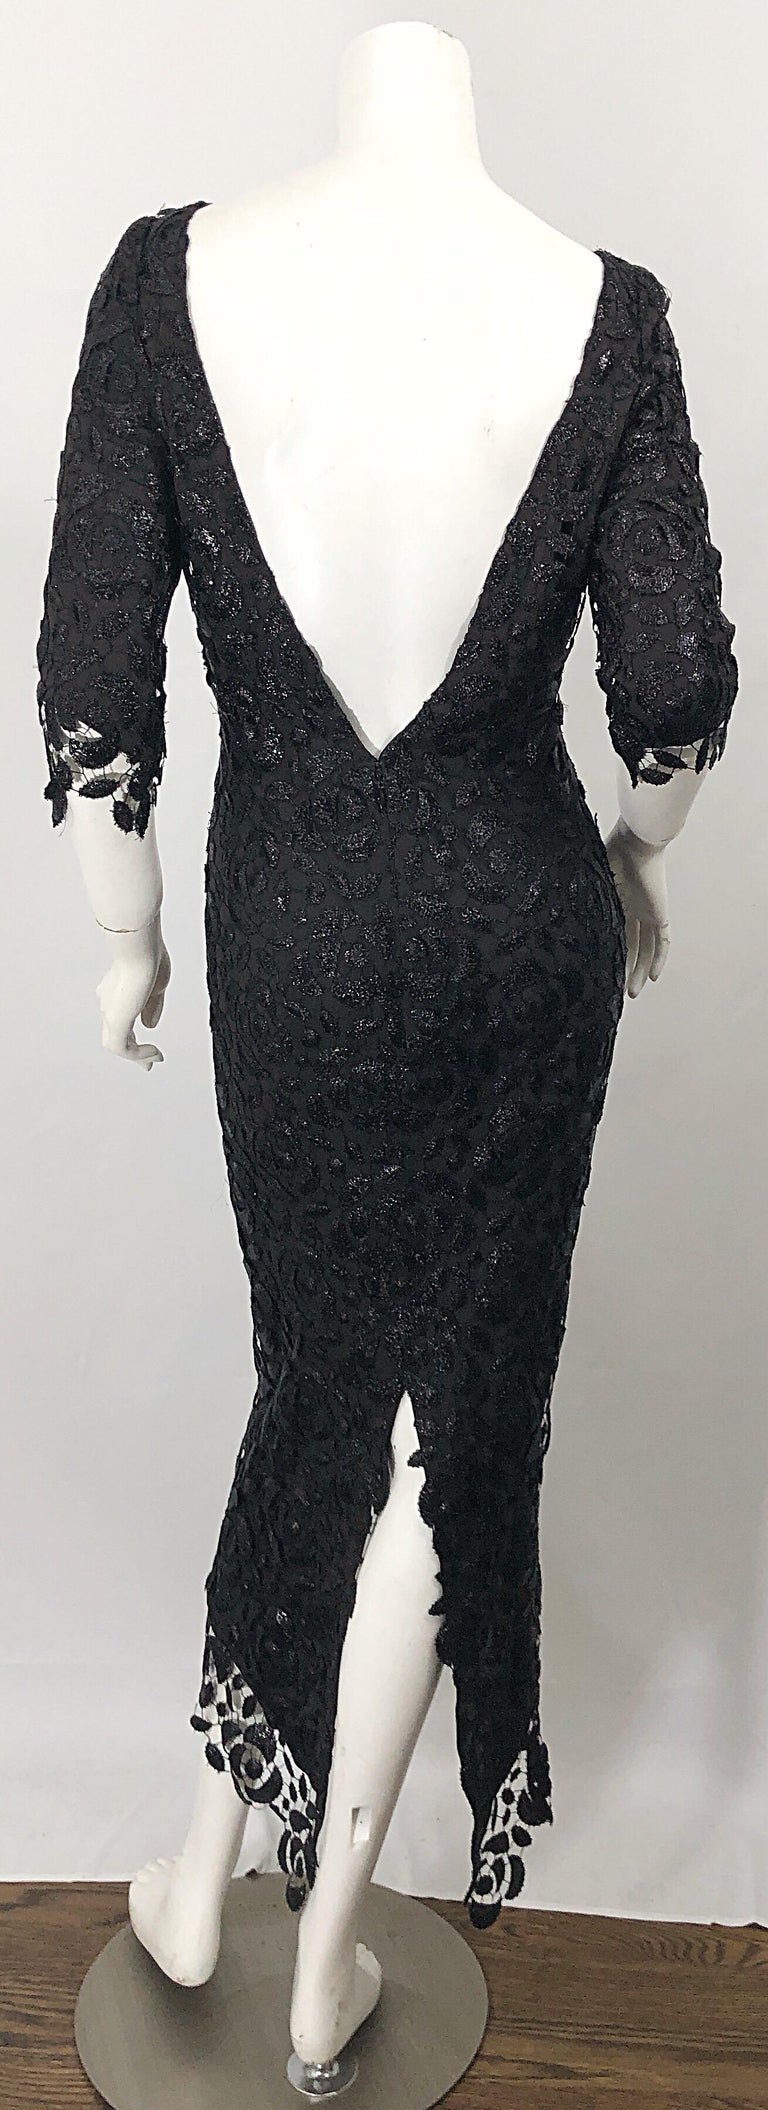 Stunning $10k Vintage Halston Black 3/4 Sleeves Silk Lace Crochet Sz 4 6 Dress For Sale 13